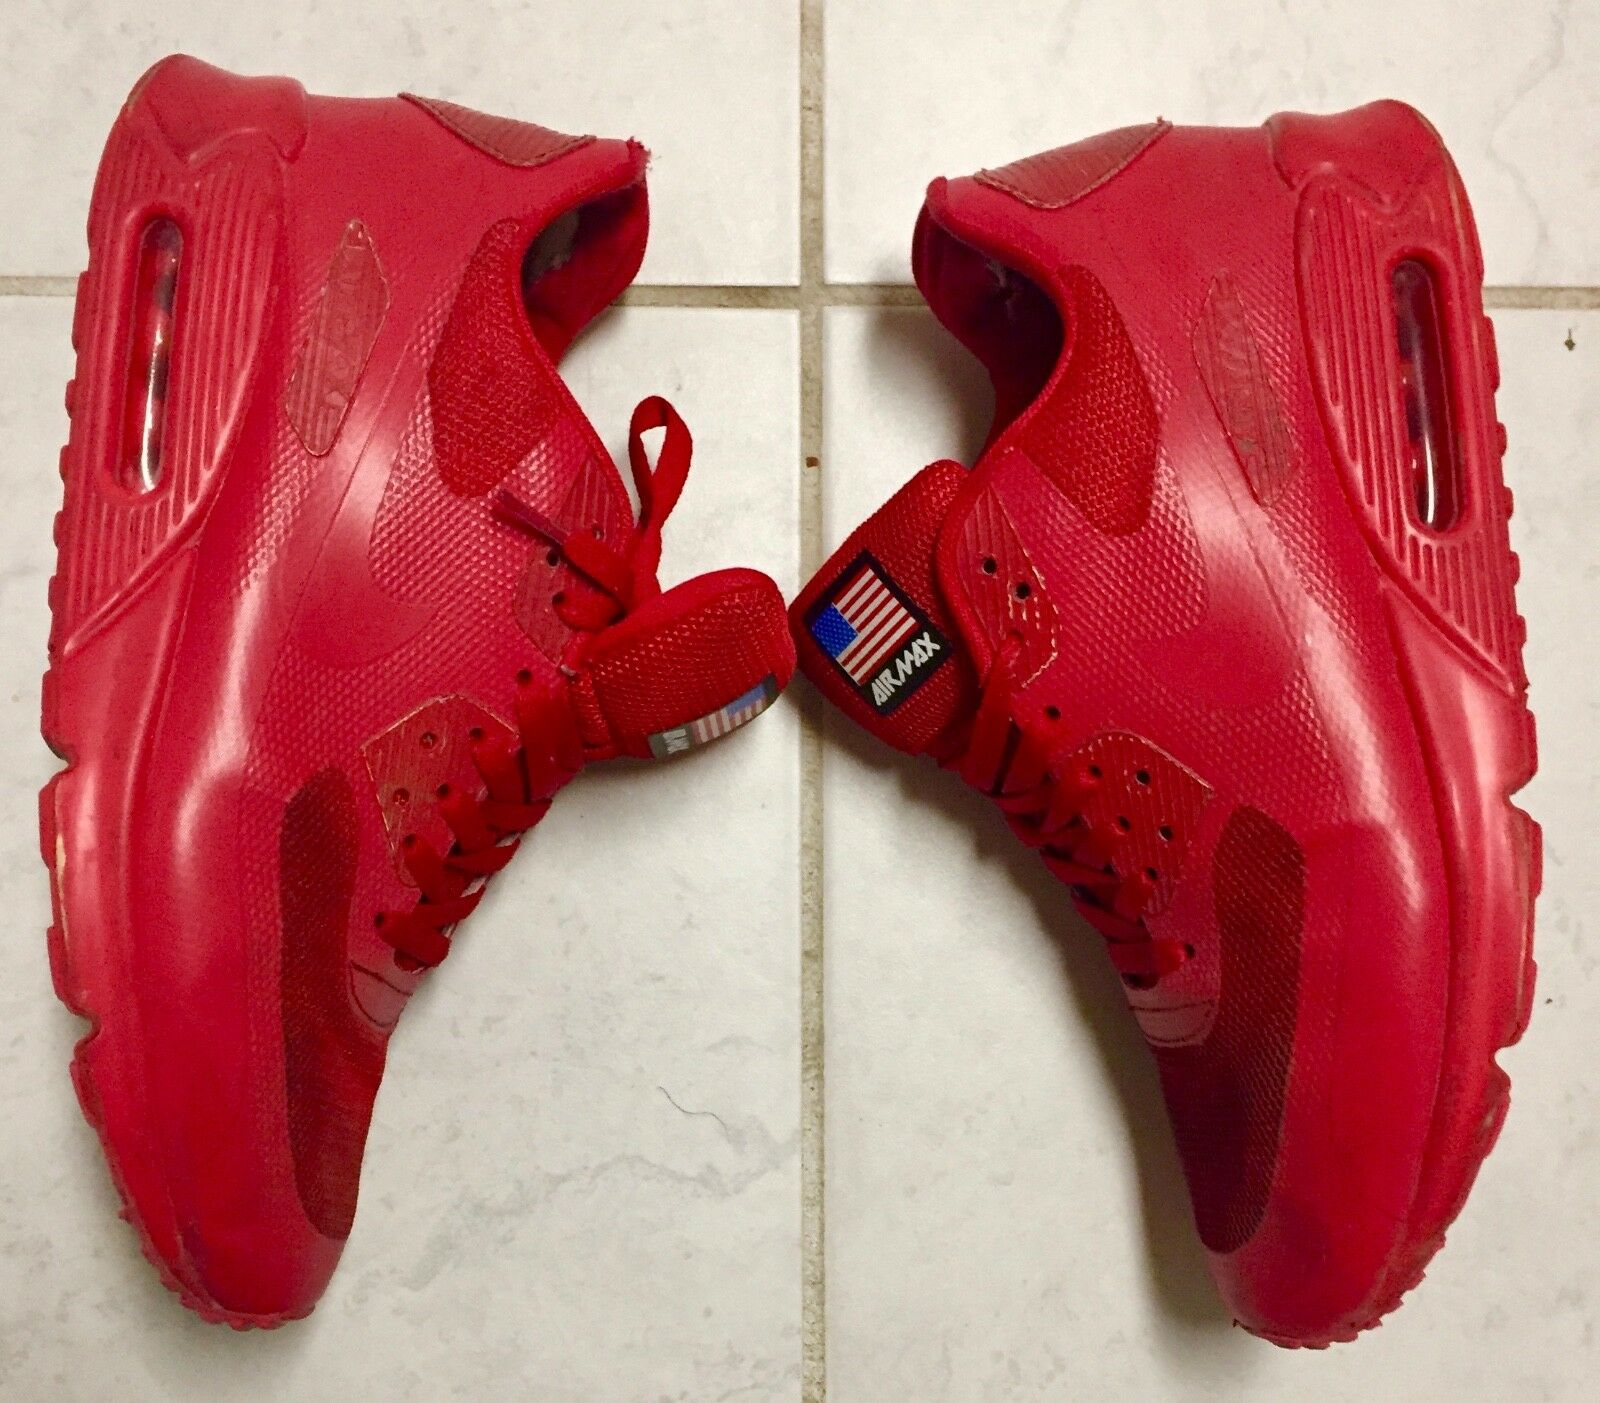 Nike Air Max 90 Rare Independence Day Sz 11 ROT/ROT Rare 90 USA e5418e